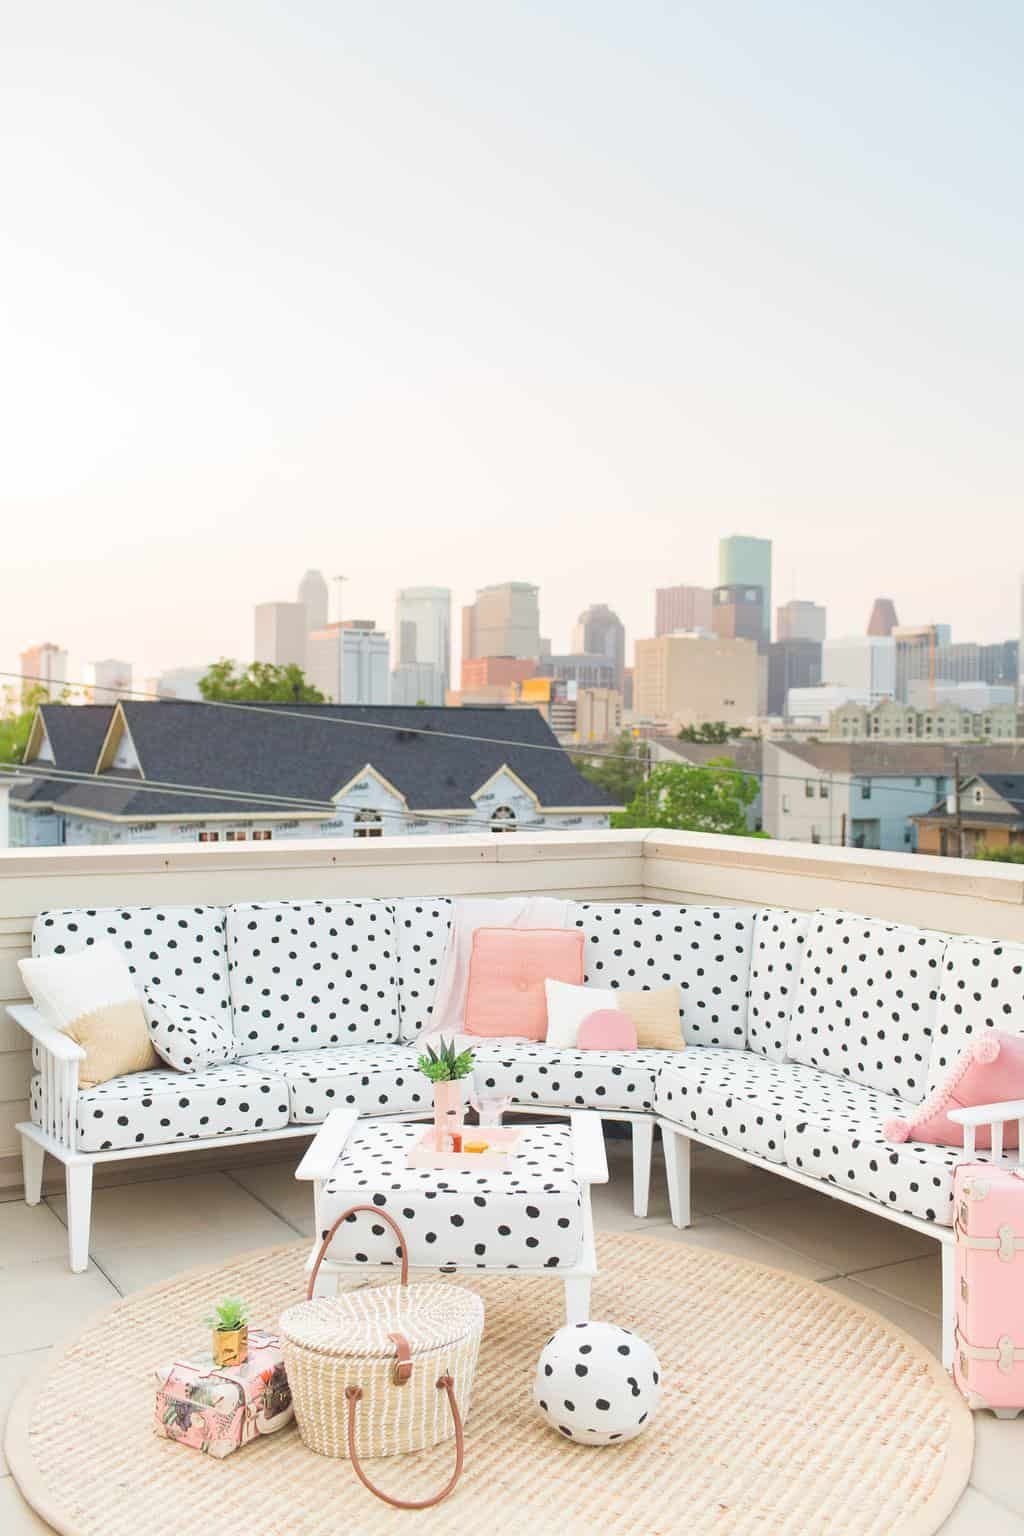 Our Downtown Rooftop Patio Makeover Reveal By Top Houston Lifestyle Blogger  Ashley Rose Of Sugar U0026